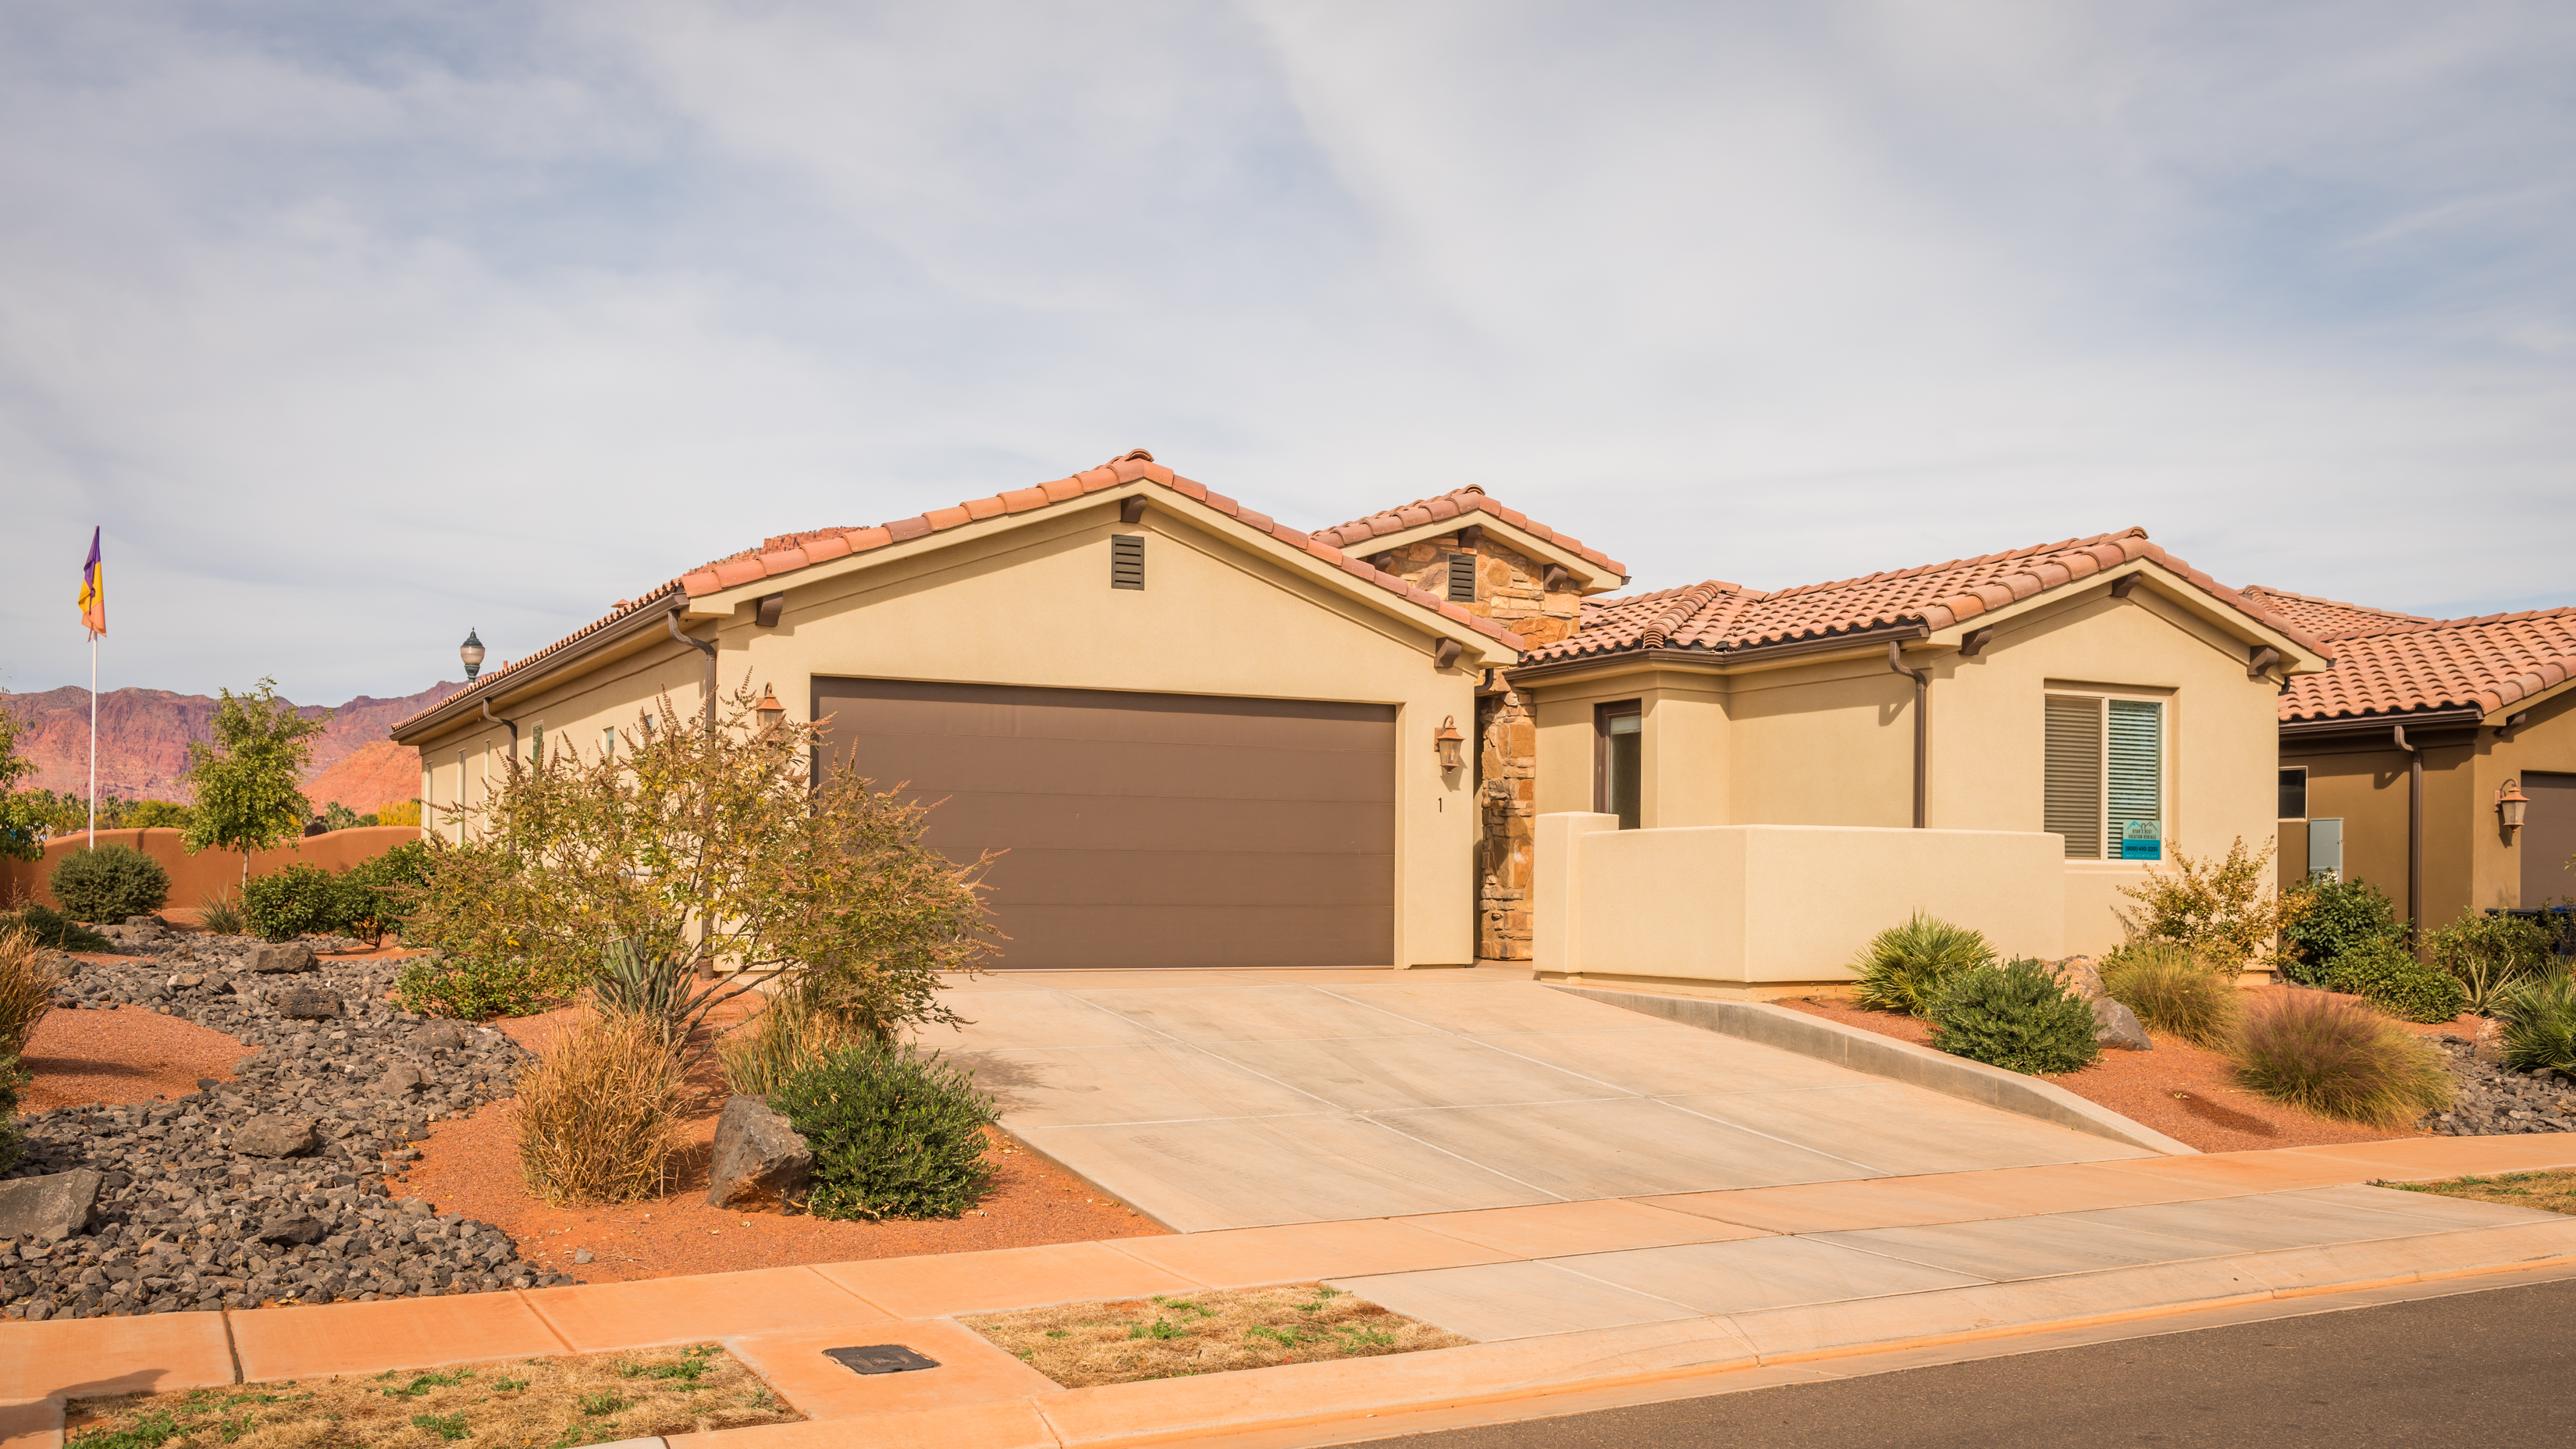 Canyonlands #1 Paradise Village at Zion | 3 Bedroom St. George ...